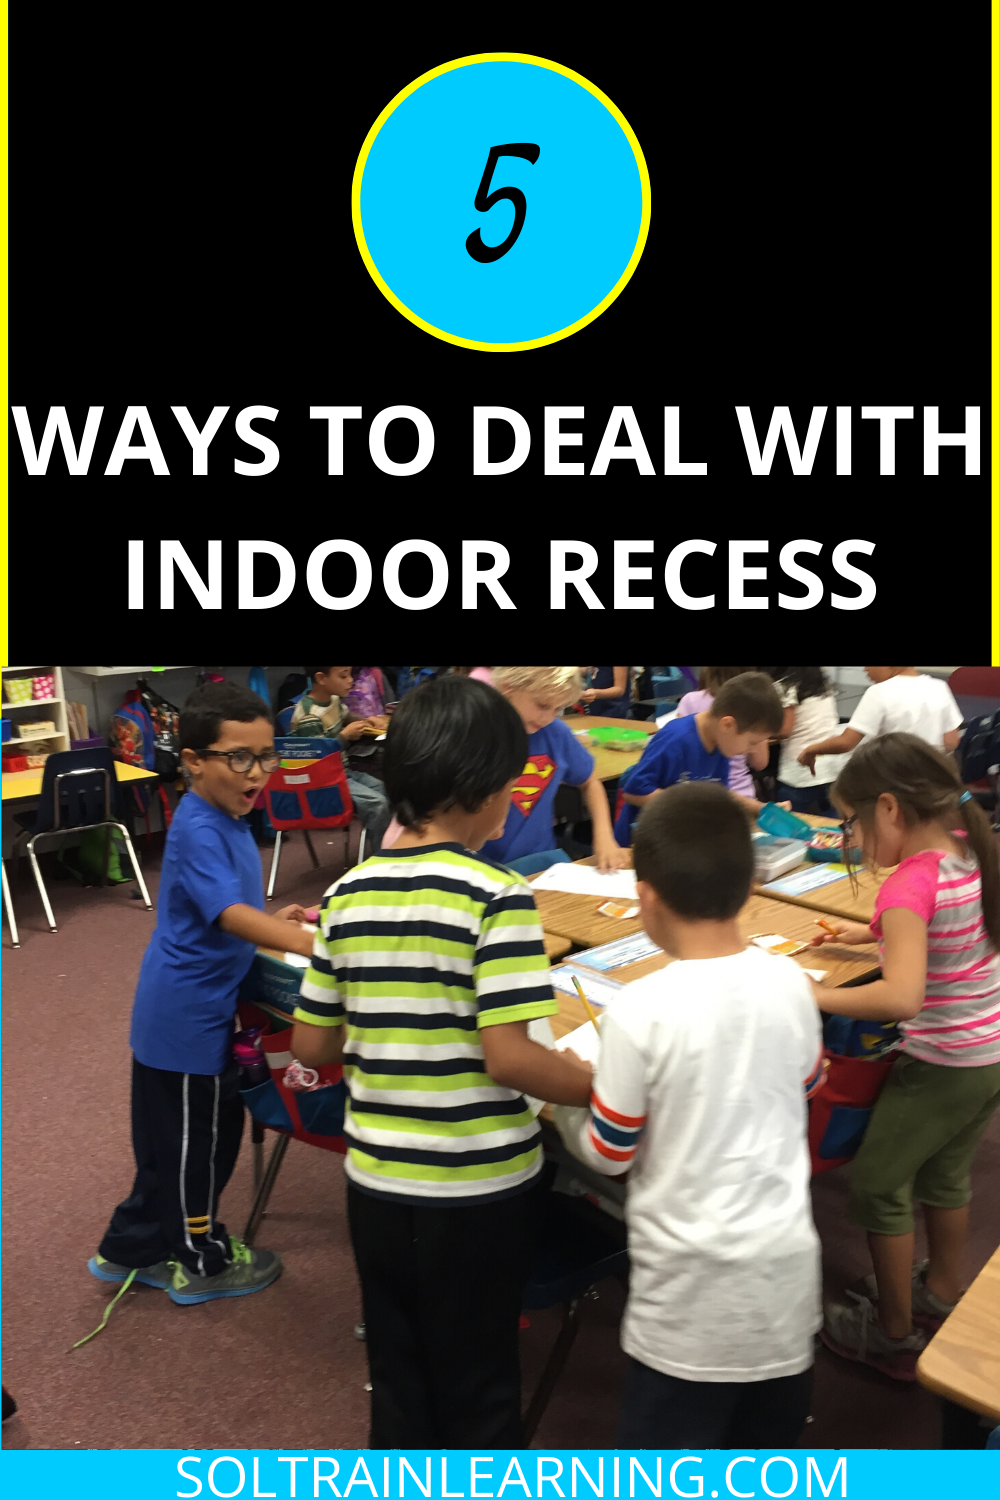 5 Tips to Curb the Chaos of Indoor Recess Elementary